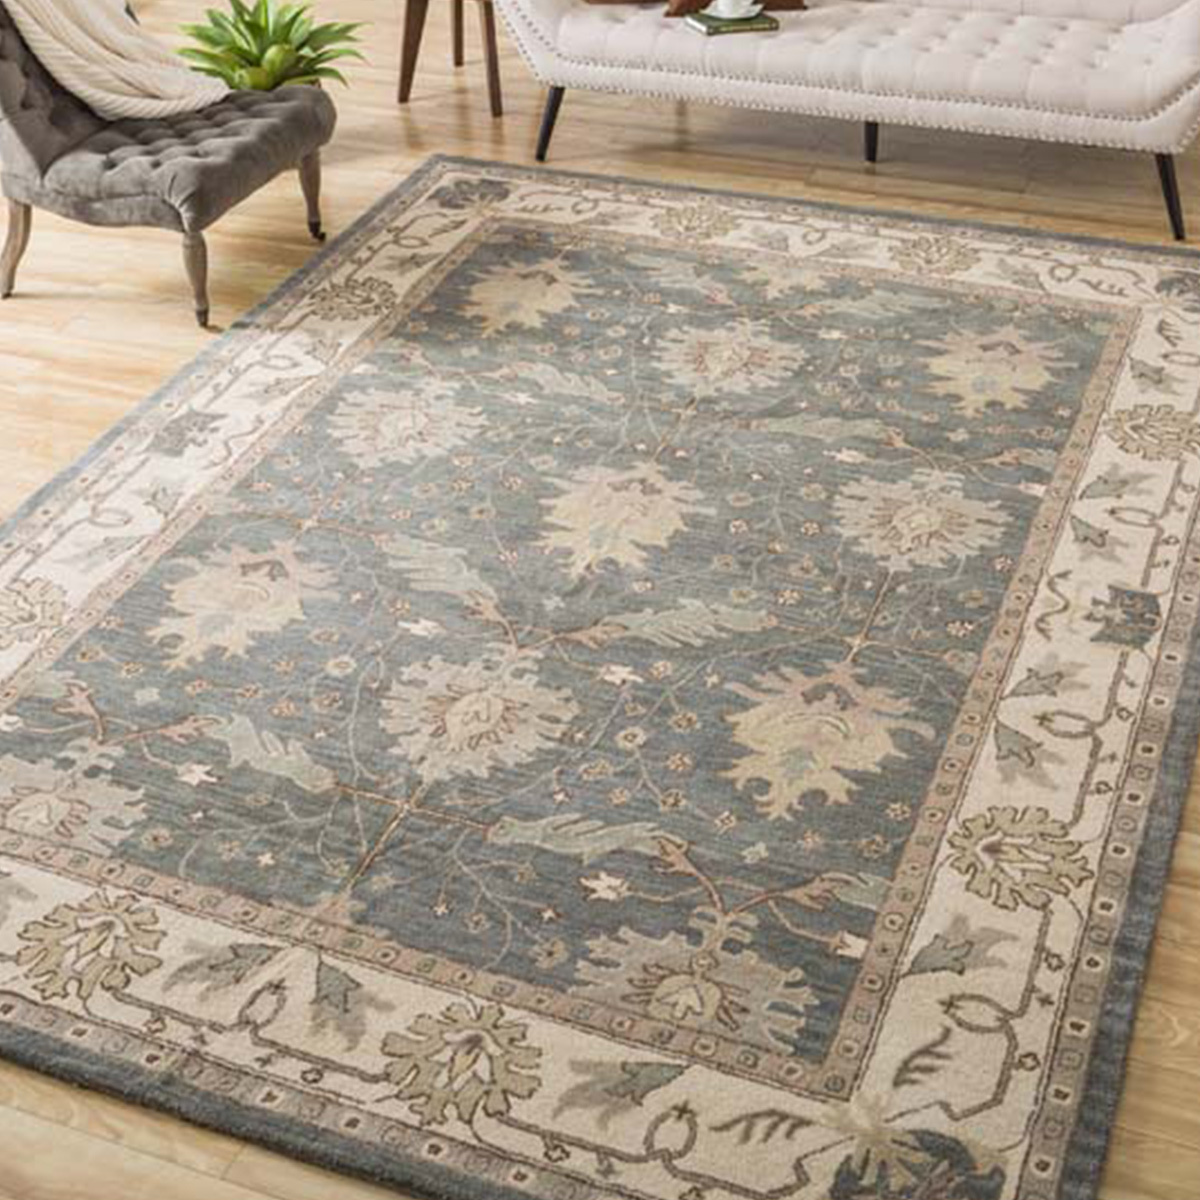 Patterned caspian blue wool rug that repels dirt and stains. photo